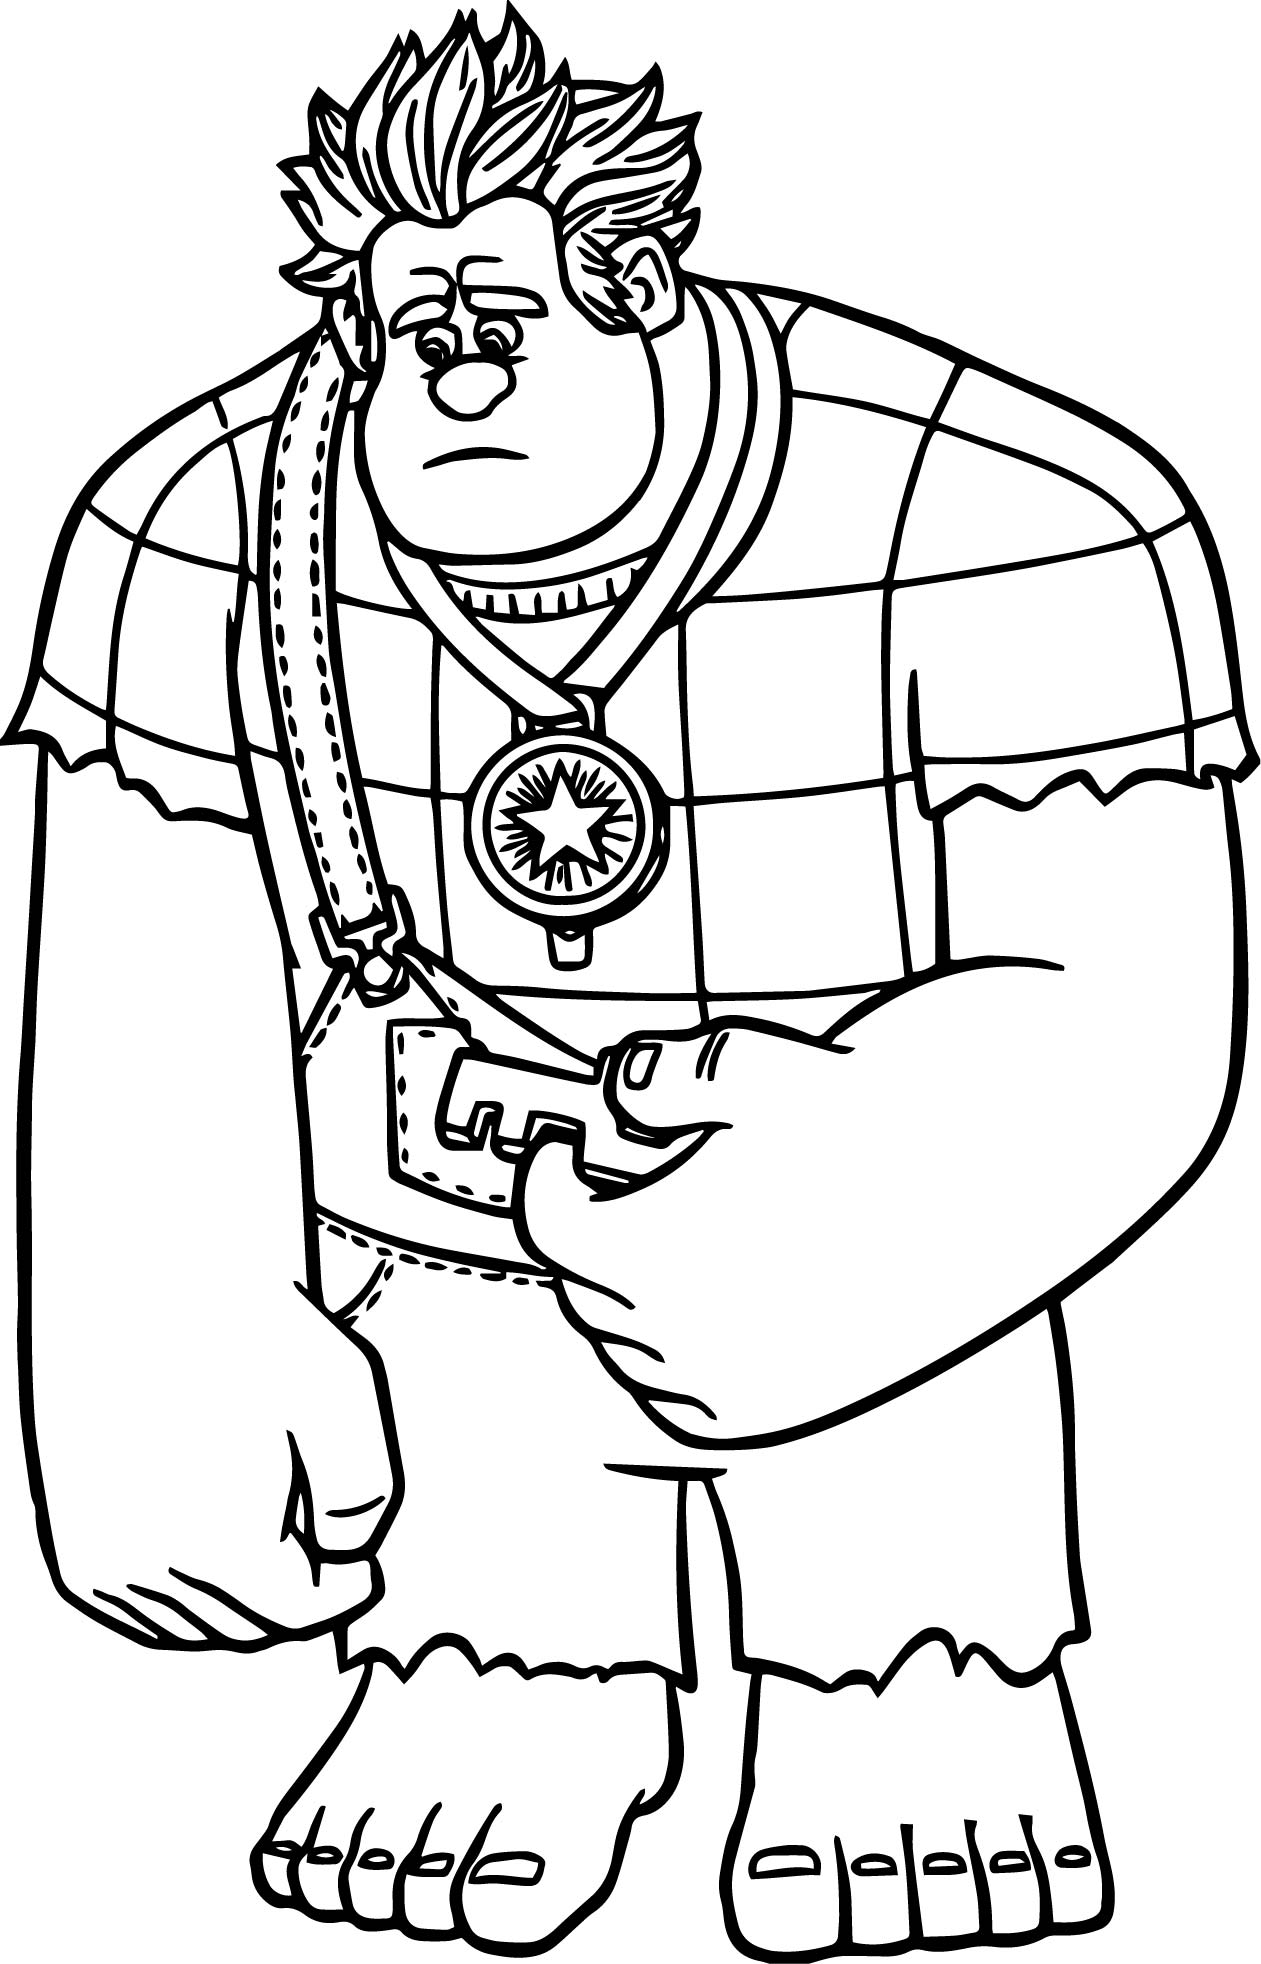 Wreckit Ralph Free Coloring Pages